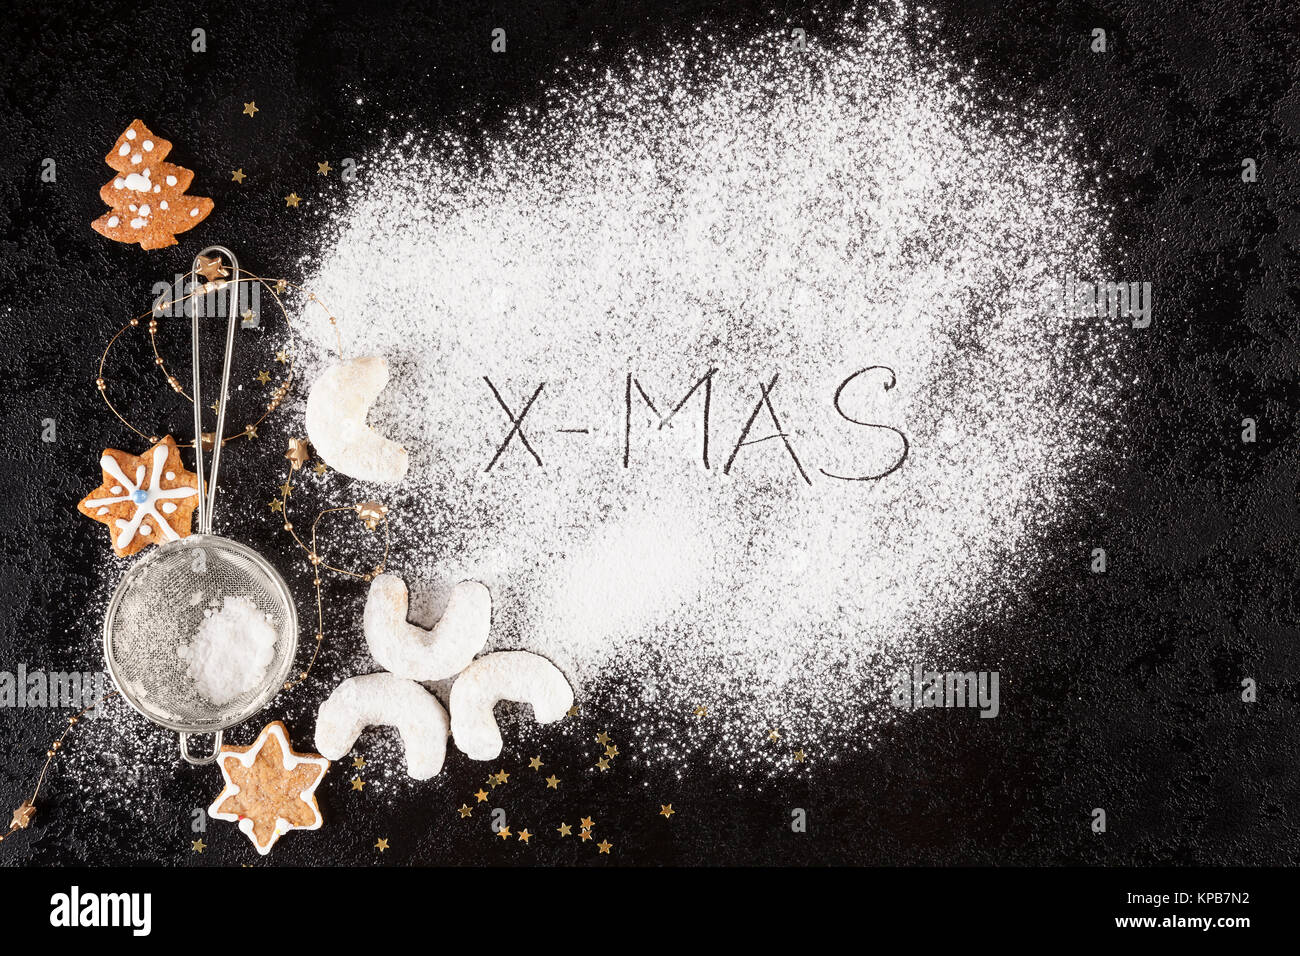 Xmas concept. Christmas cookies with sifter and spilled sugar from above. - Stock Image